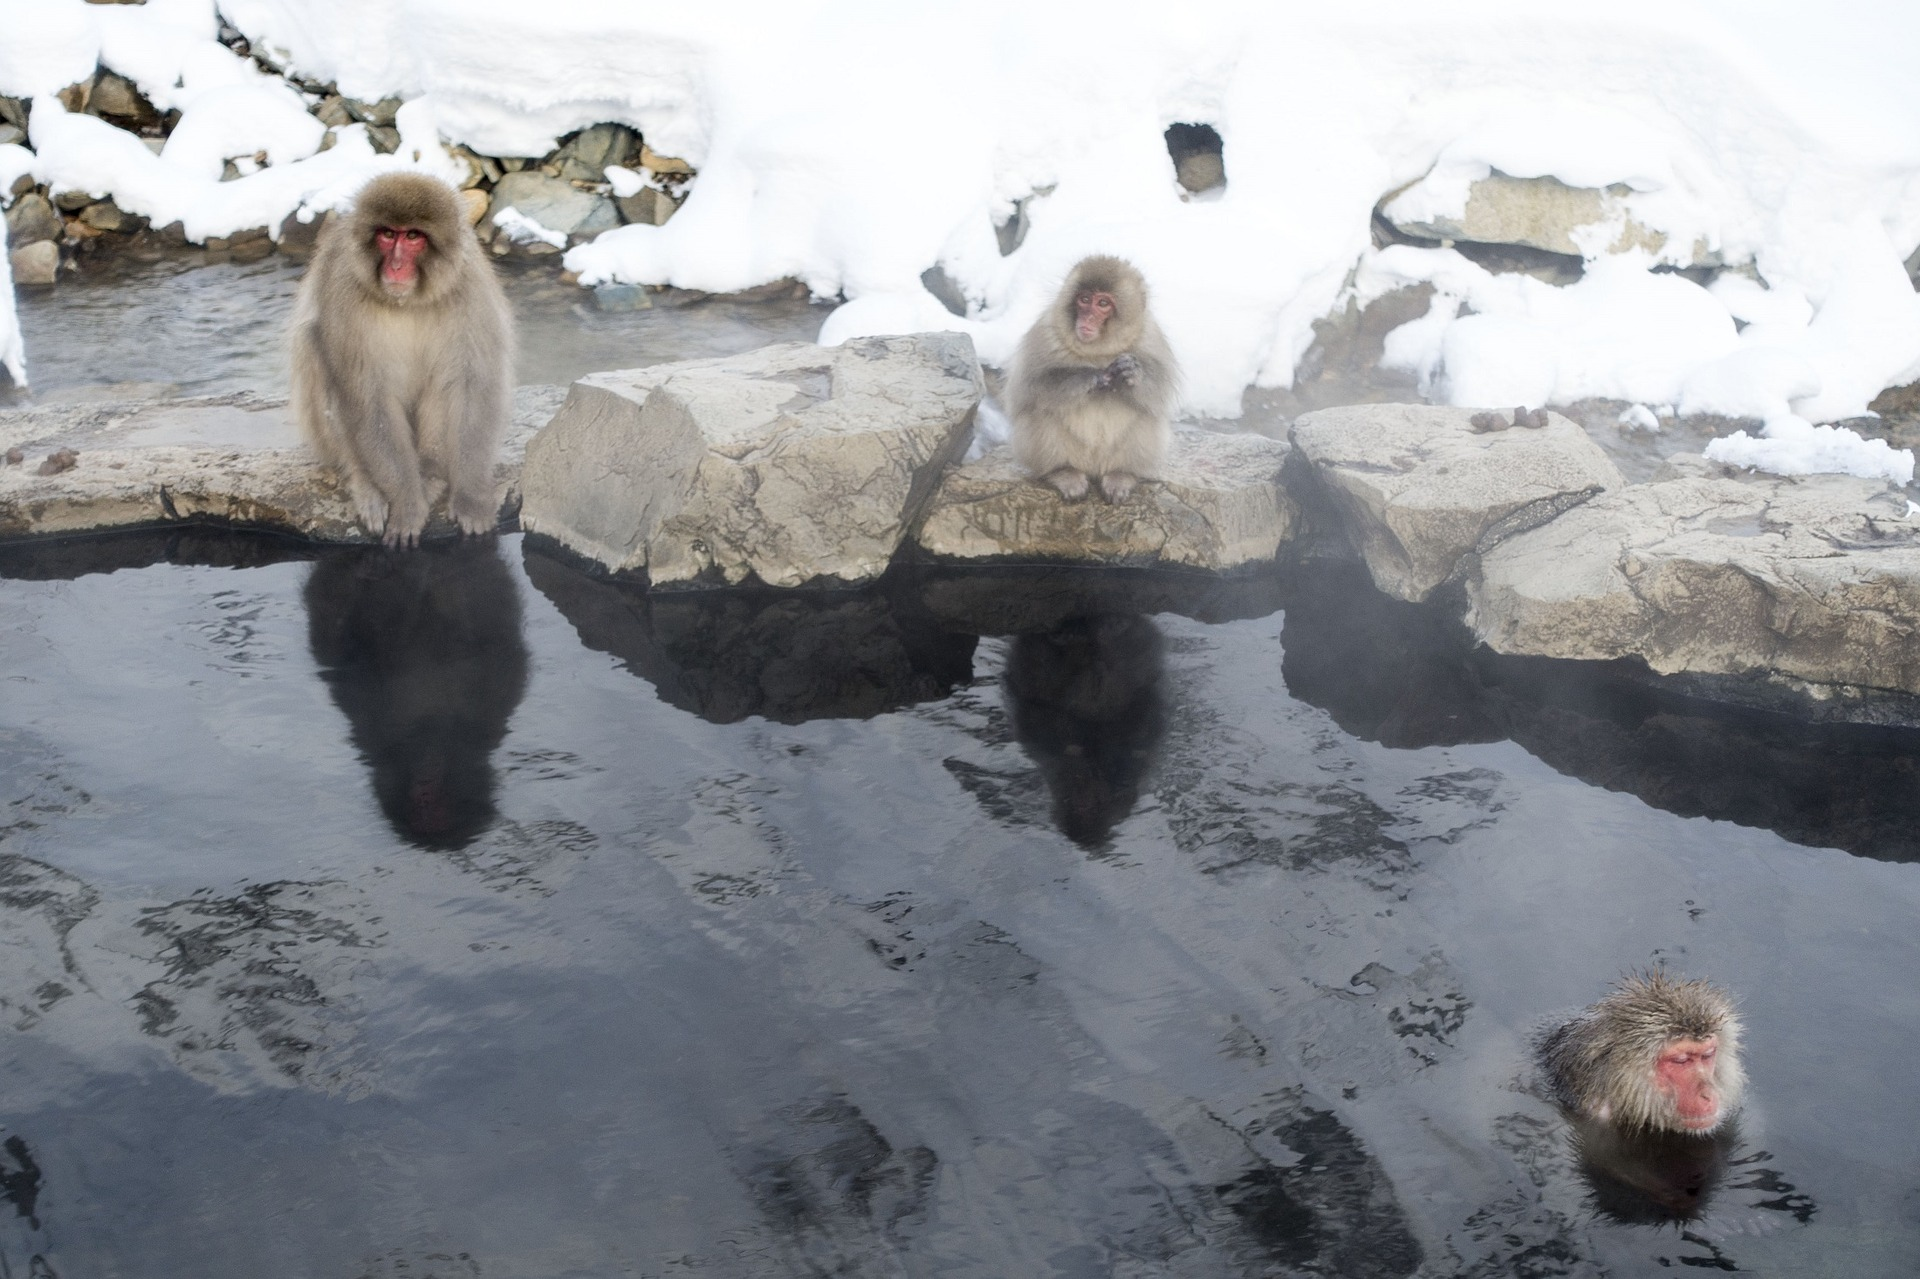 snow-monkeys-onsen.jpg